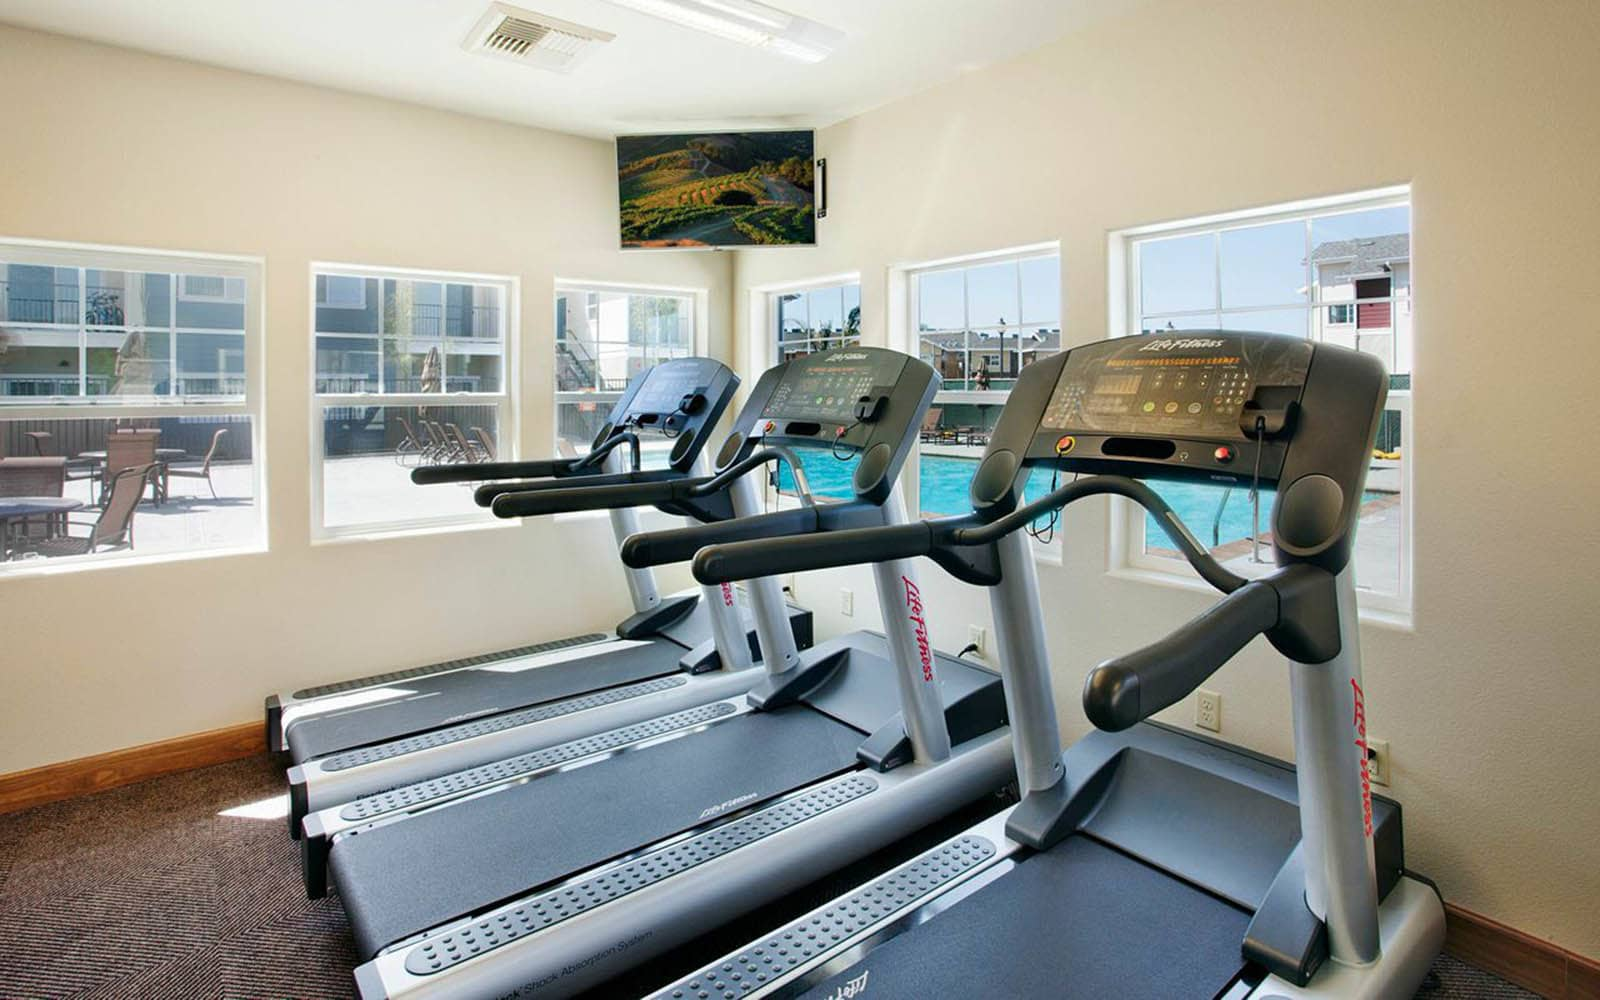 Treadmills at Siena Apartments in Santa Maria, CA